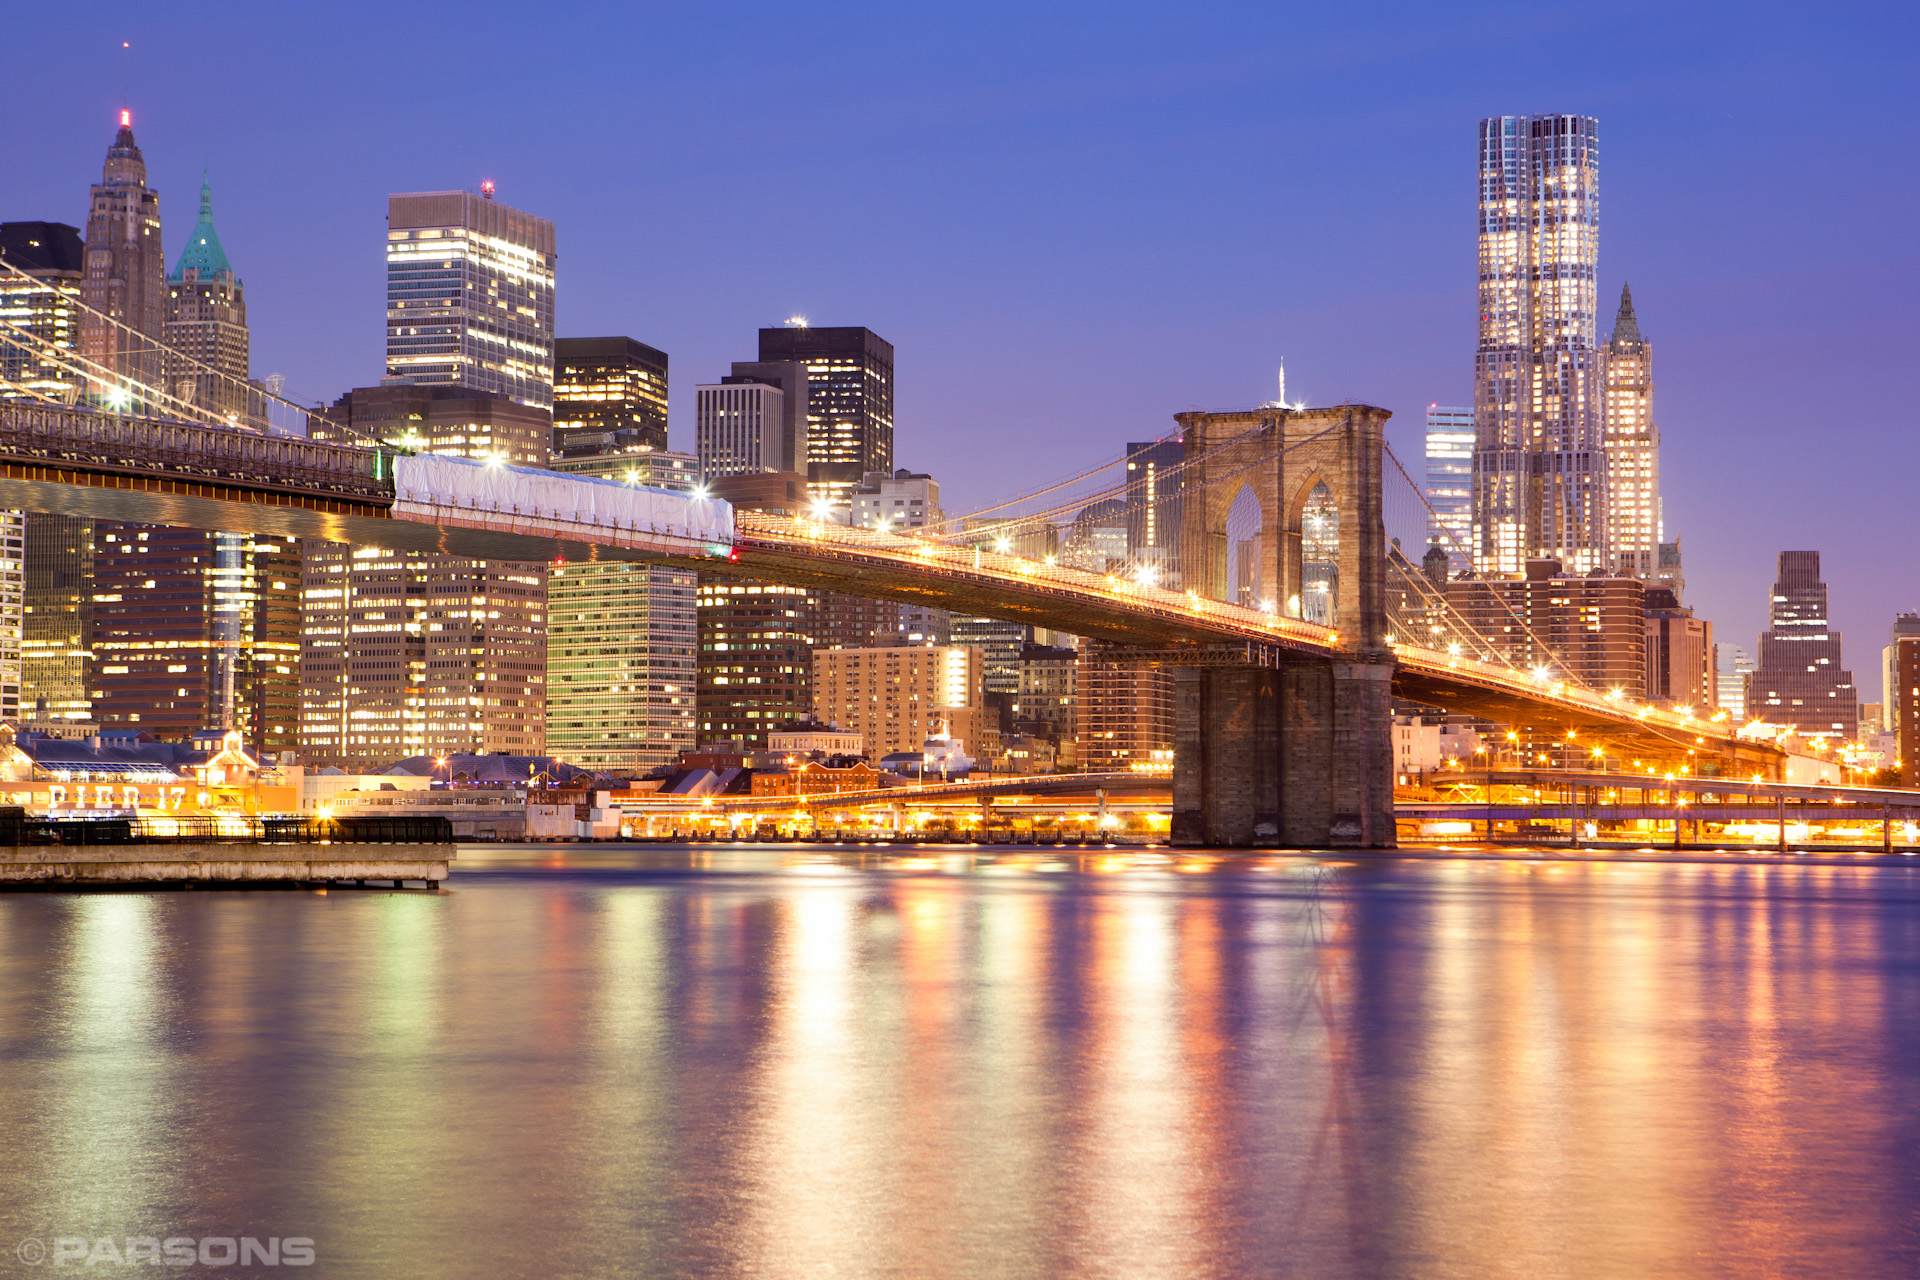 Civil-Engineering-Brooklyn-Bridge-New-York.JPG